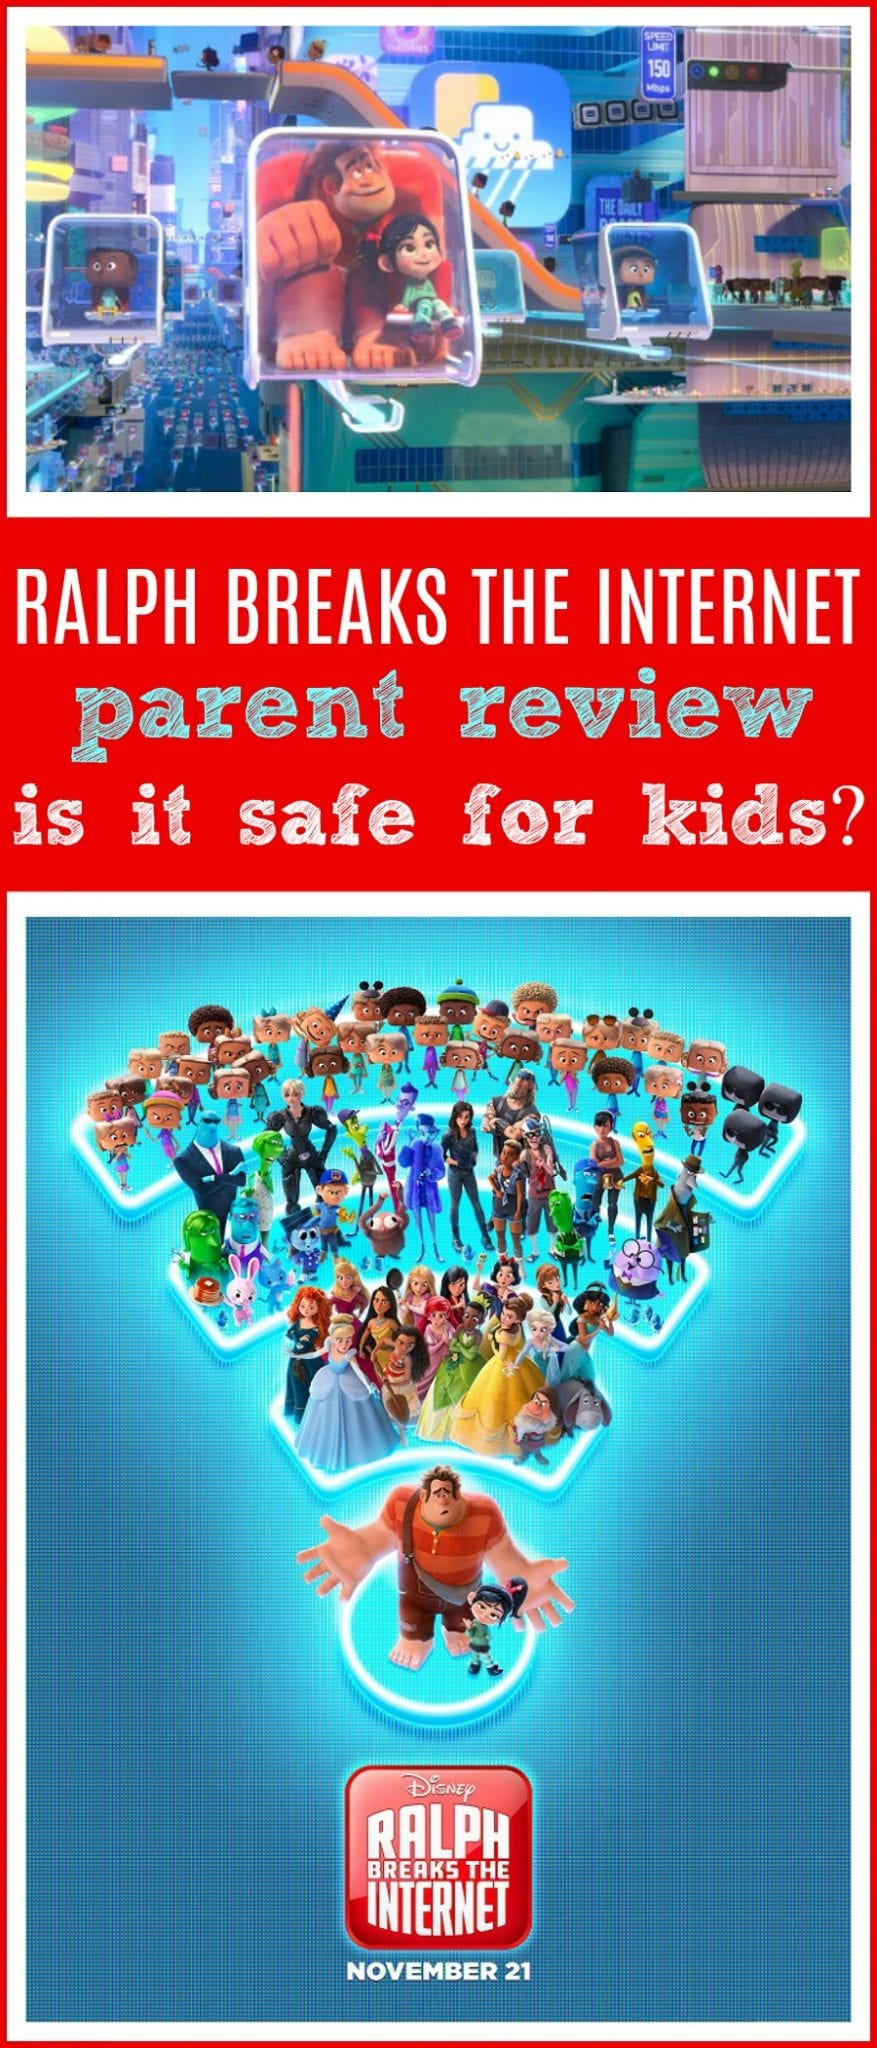 Ralph breaks the internet review for kids